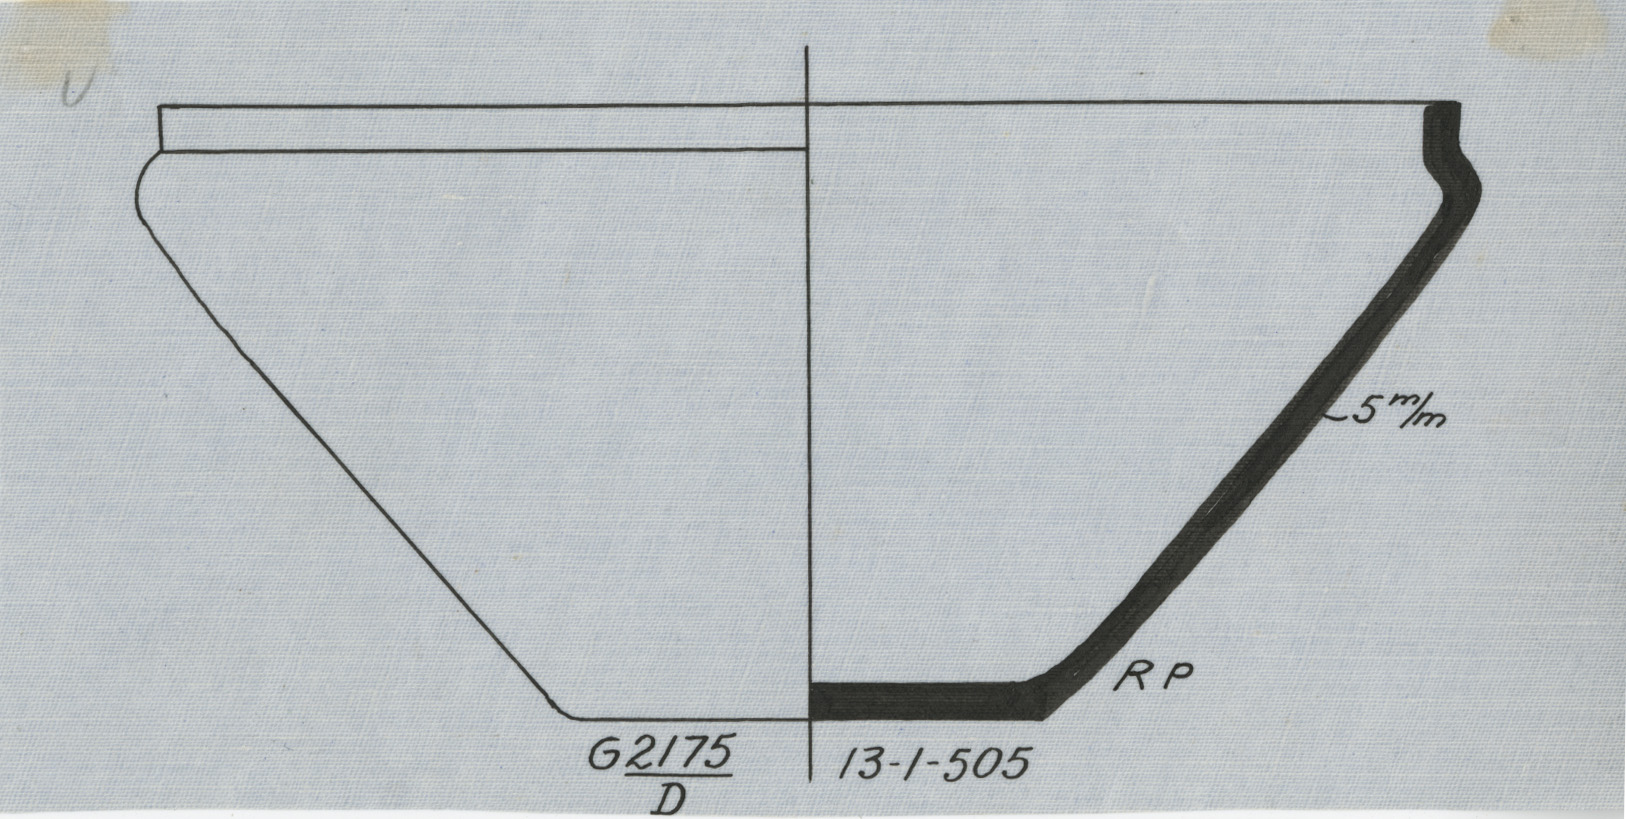 Drawings: G 2175, Shaft D: pottery, bowl